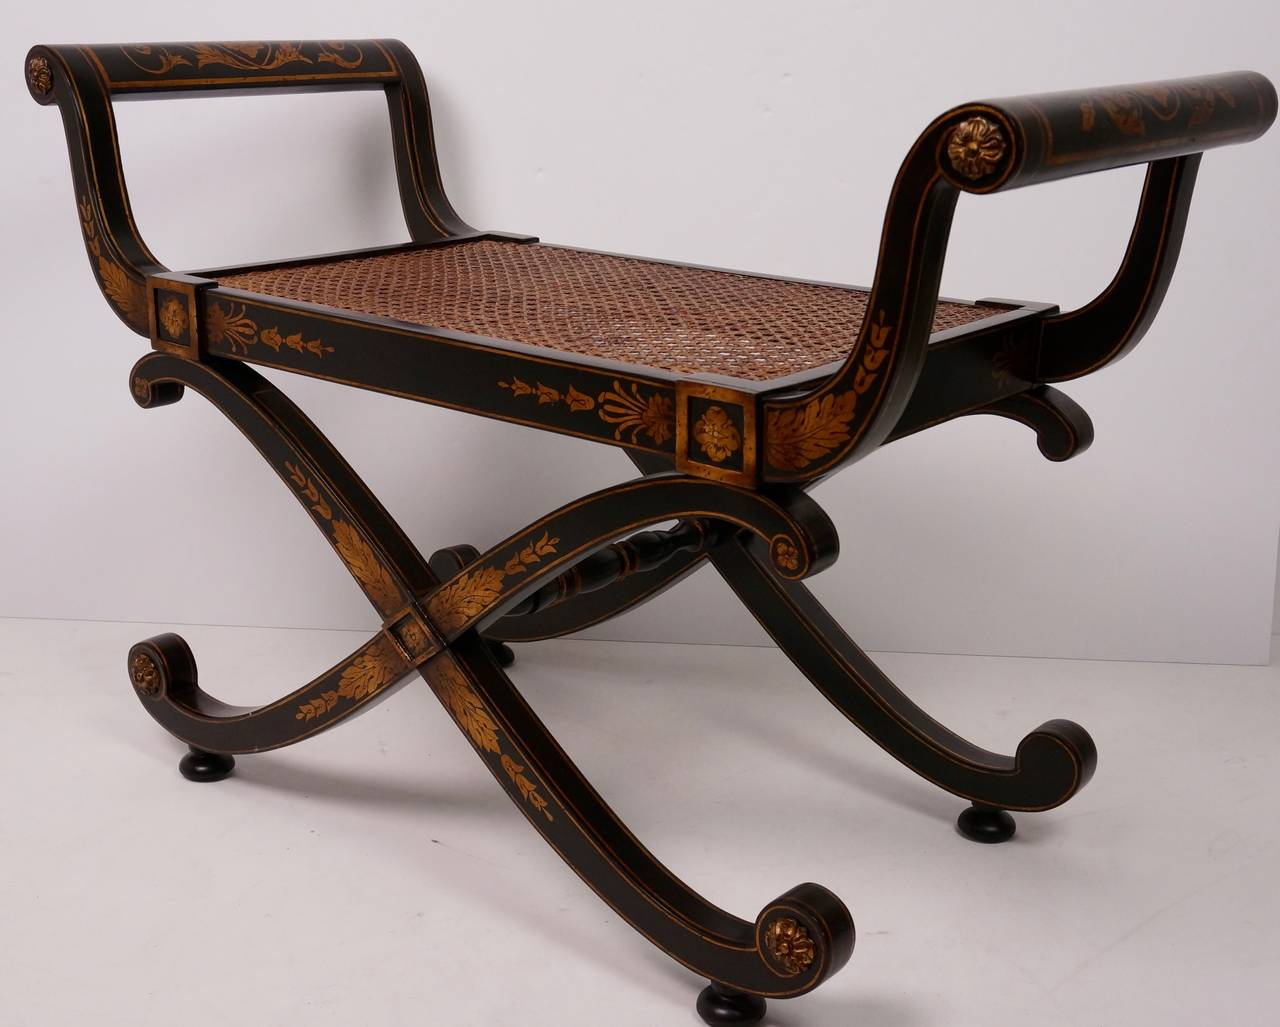 English Regency Style X-Bench with French Caning: John-Richards at 1stdibs